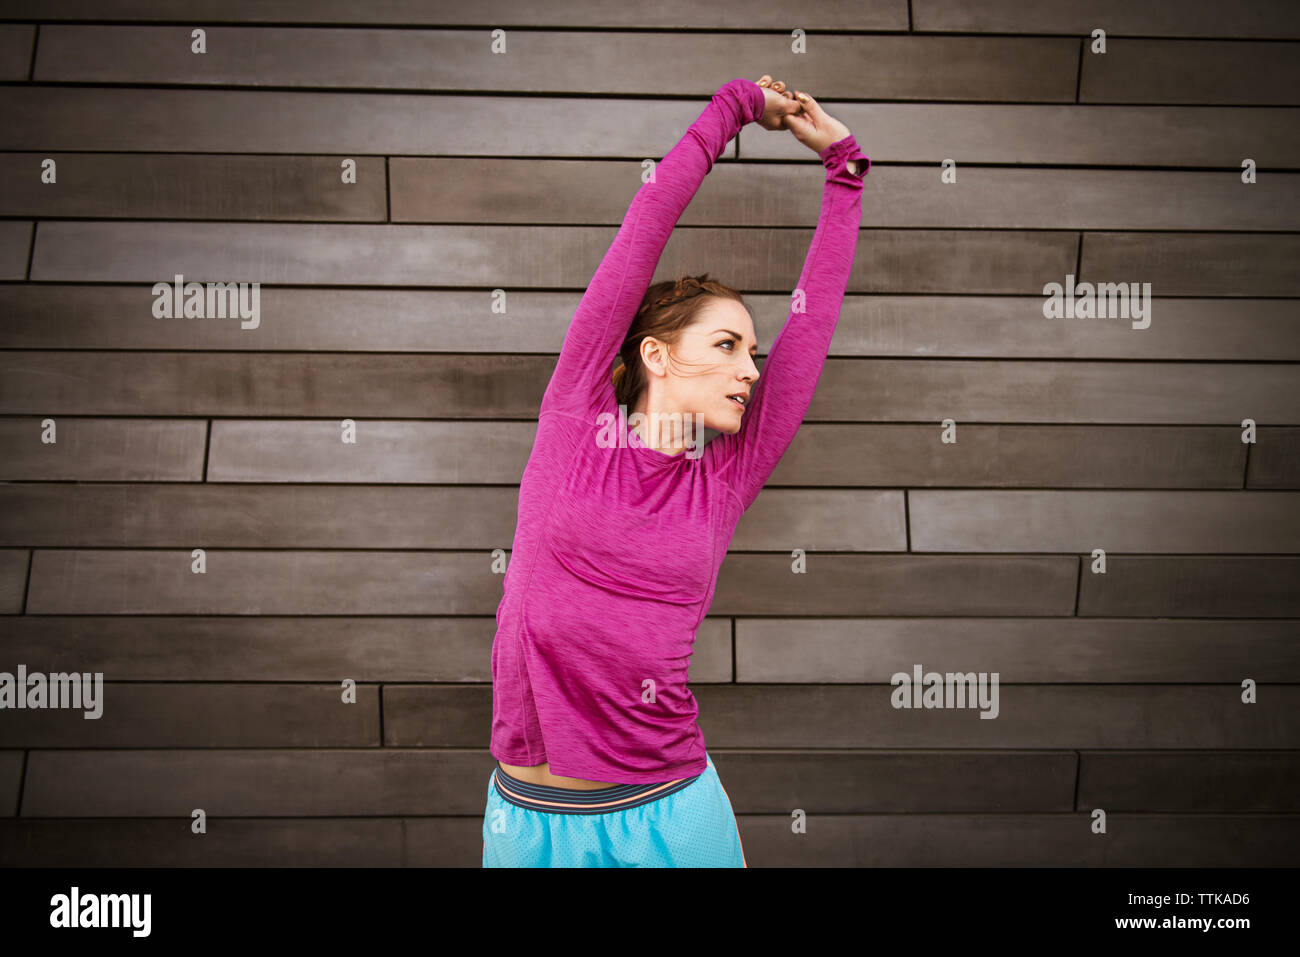 Mid adult woman stretching against wall - Stock Image